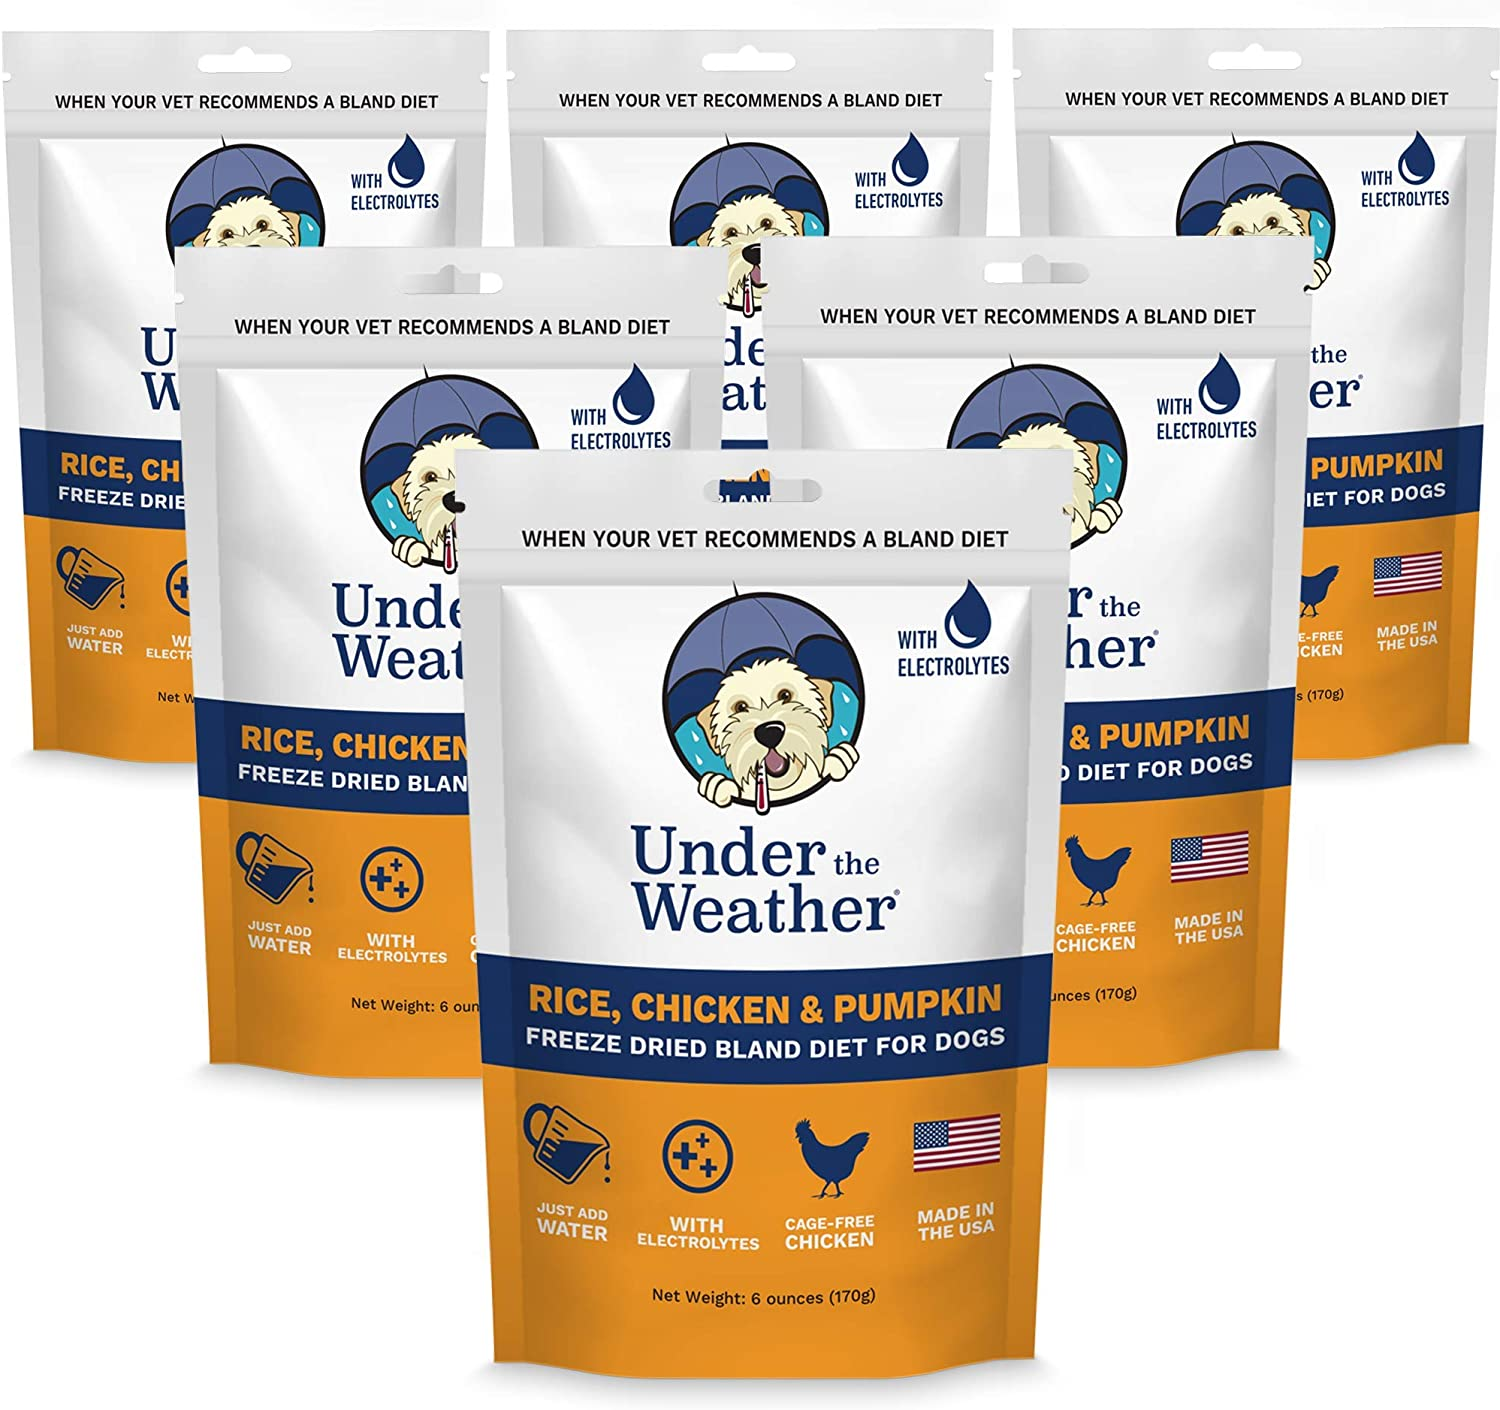 Under the Weather Easy to Digest Bland Diet for Sick Dogs - Contains Electrolytes - Gluten Free, All Natural, Freeze Dried 100% Human Grade Meats (Buy 5 - GET ONE Free) - Rice, Chicken & Pumpkin